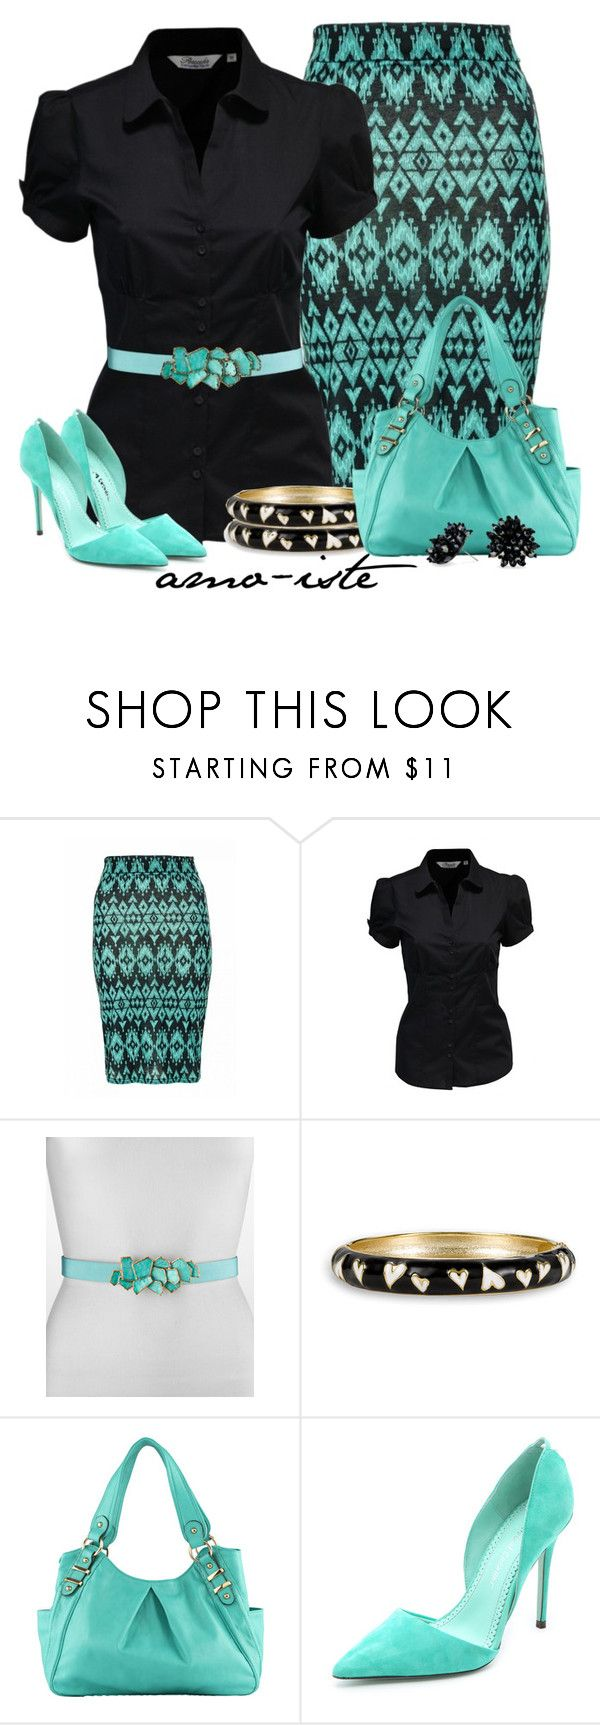 """Midi Skirt at Work"" by amo-iste ❤ liked on Polyvore featuring Quiz, Oscar de la Renta, Betsey Johnson, ALDO, Jean-Michel Cazabat and Betty Jackson"